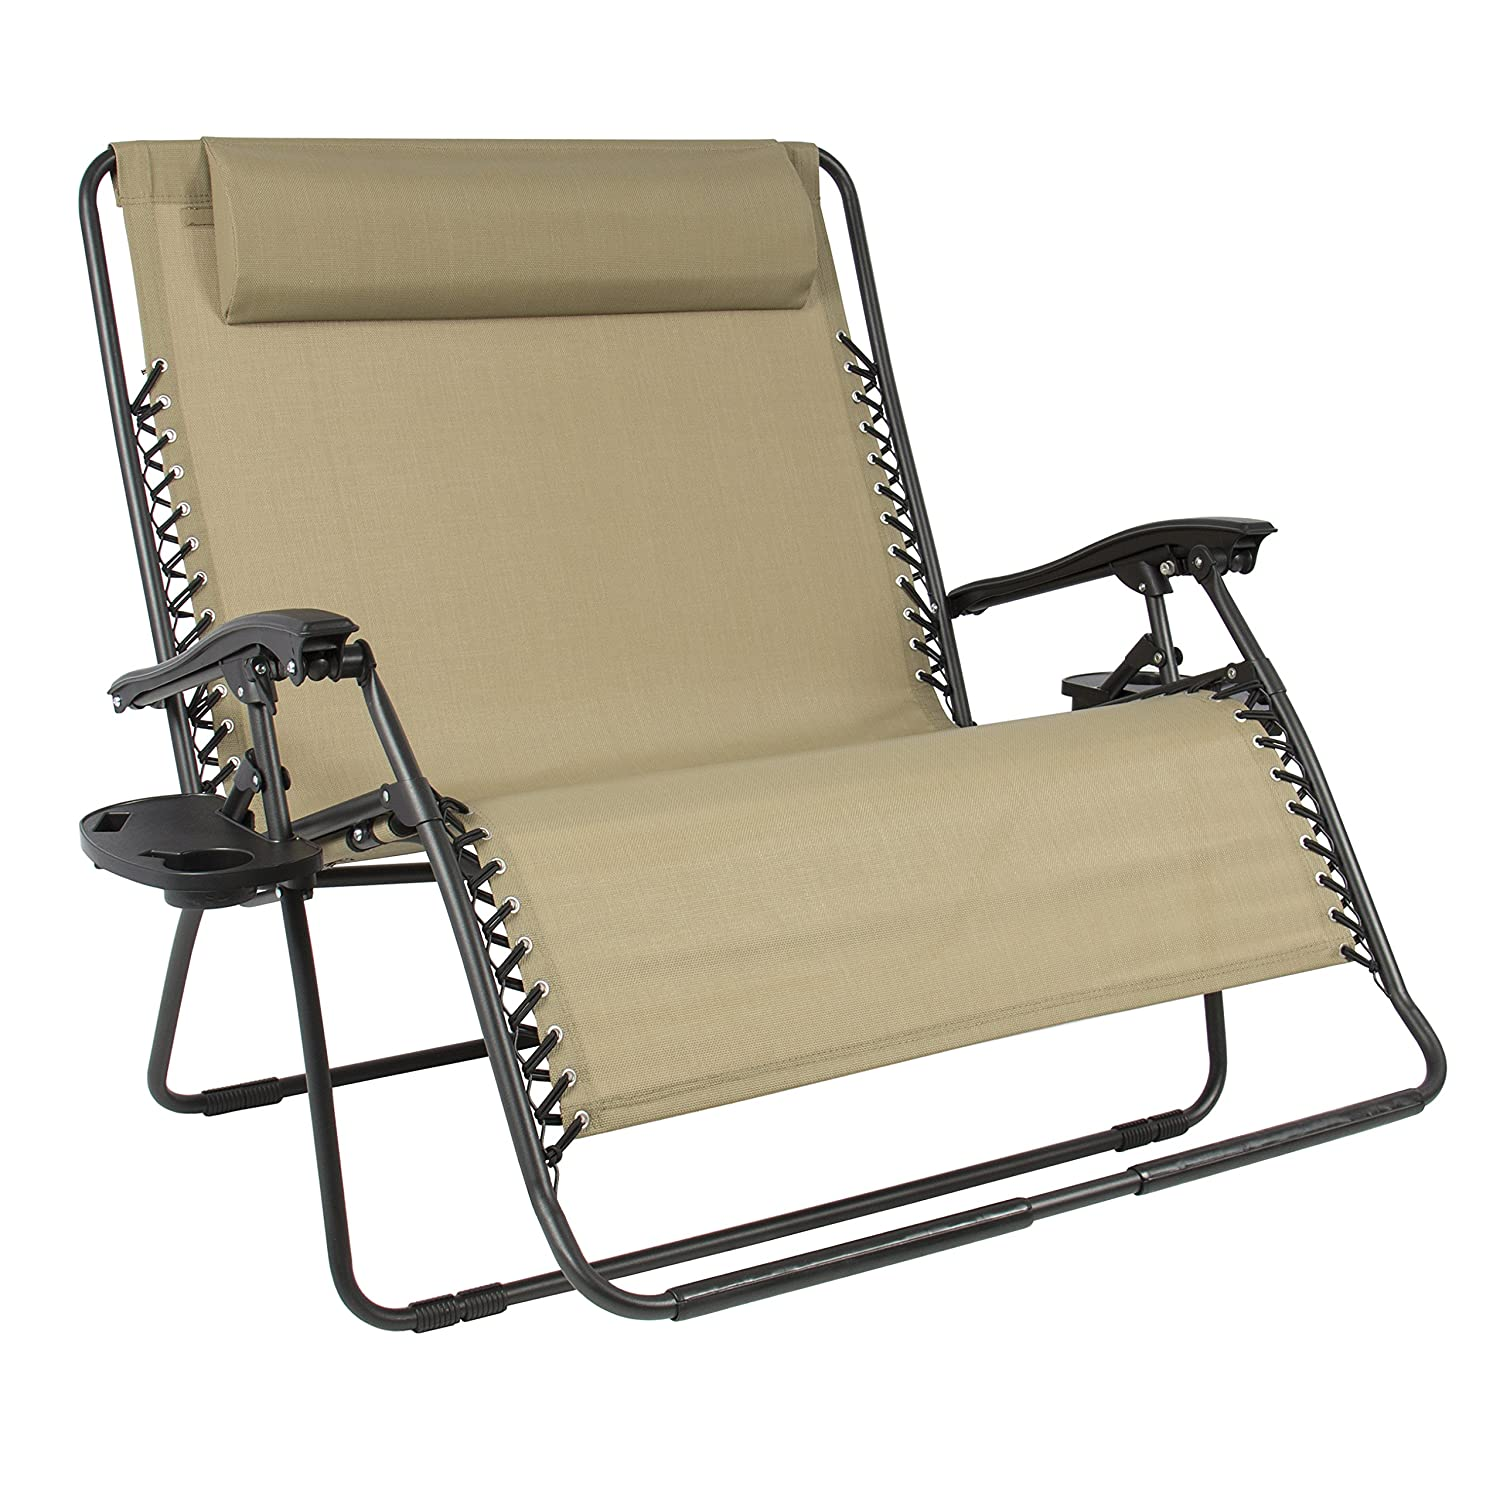 reclining support ridge lounger b outdoor patio com zero timber amazon oversized chaise chair recliner chairs for gravity